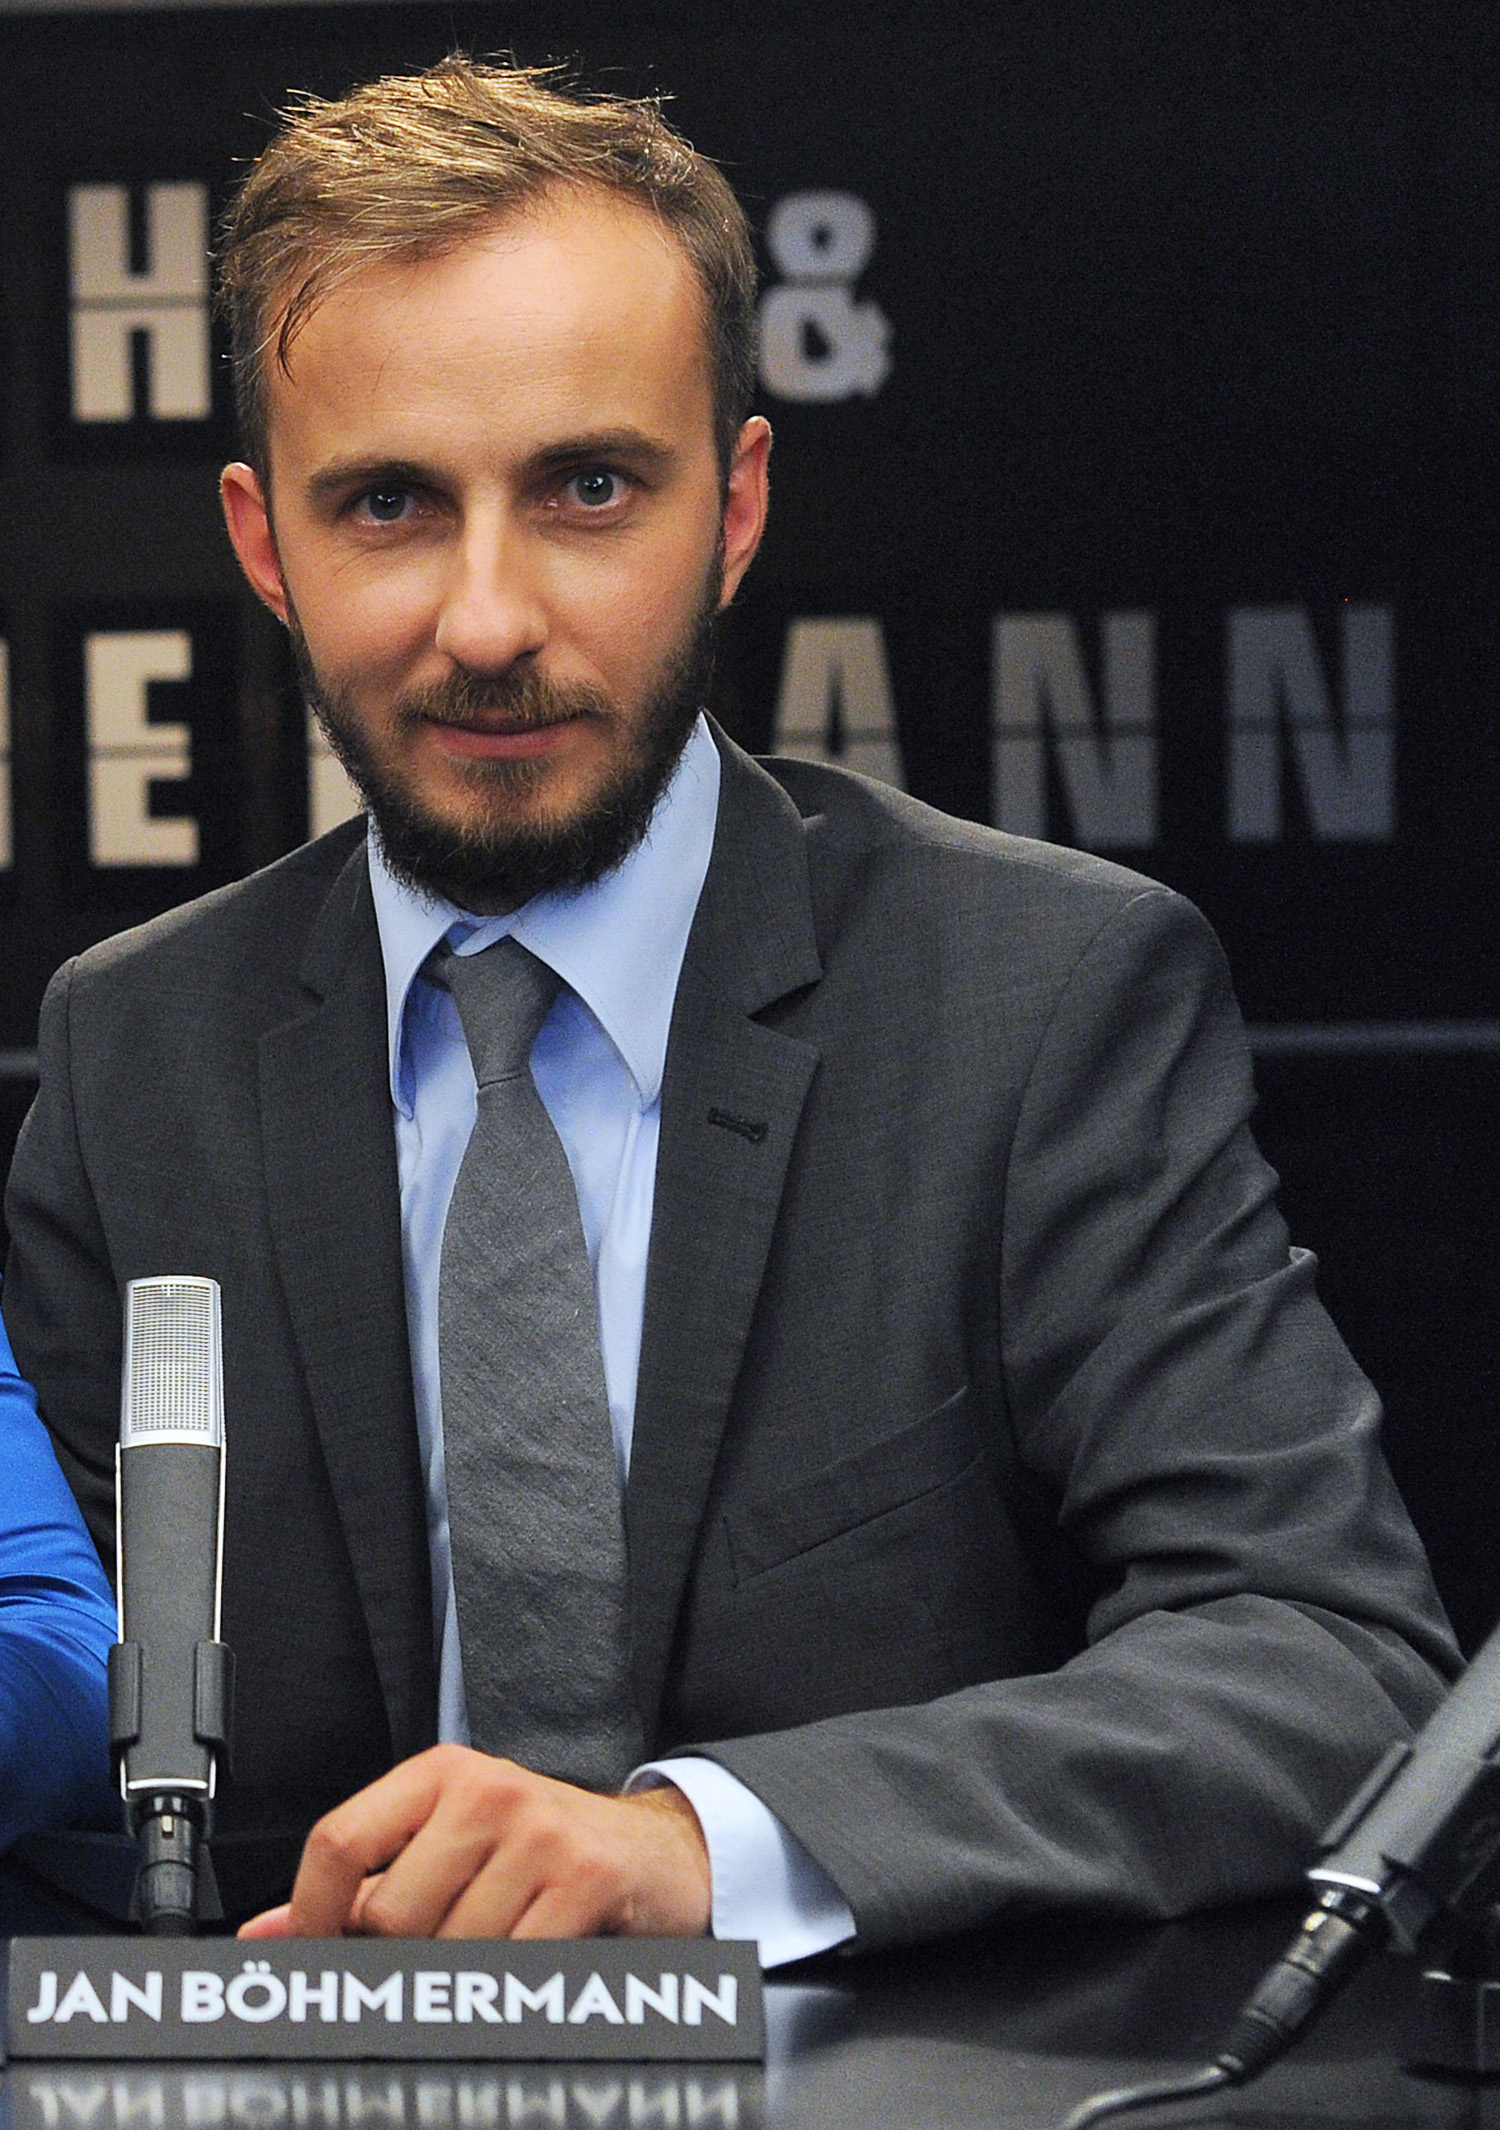 In this Aug. 28, 2012, photo, German comedian Jan Boehmermann is seen hosting a talk show in Cologne, western Germany. A recent poem by Bohmerman lampooning Erdogan has prompted the Turkish president to launch his latest free speech challenge.